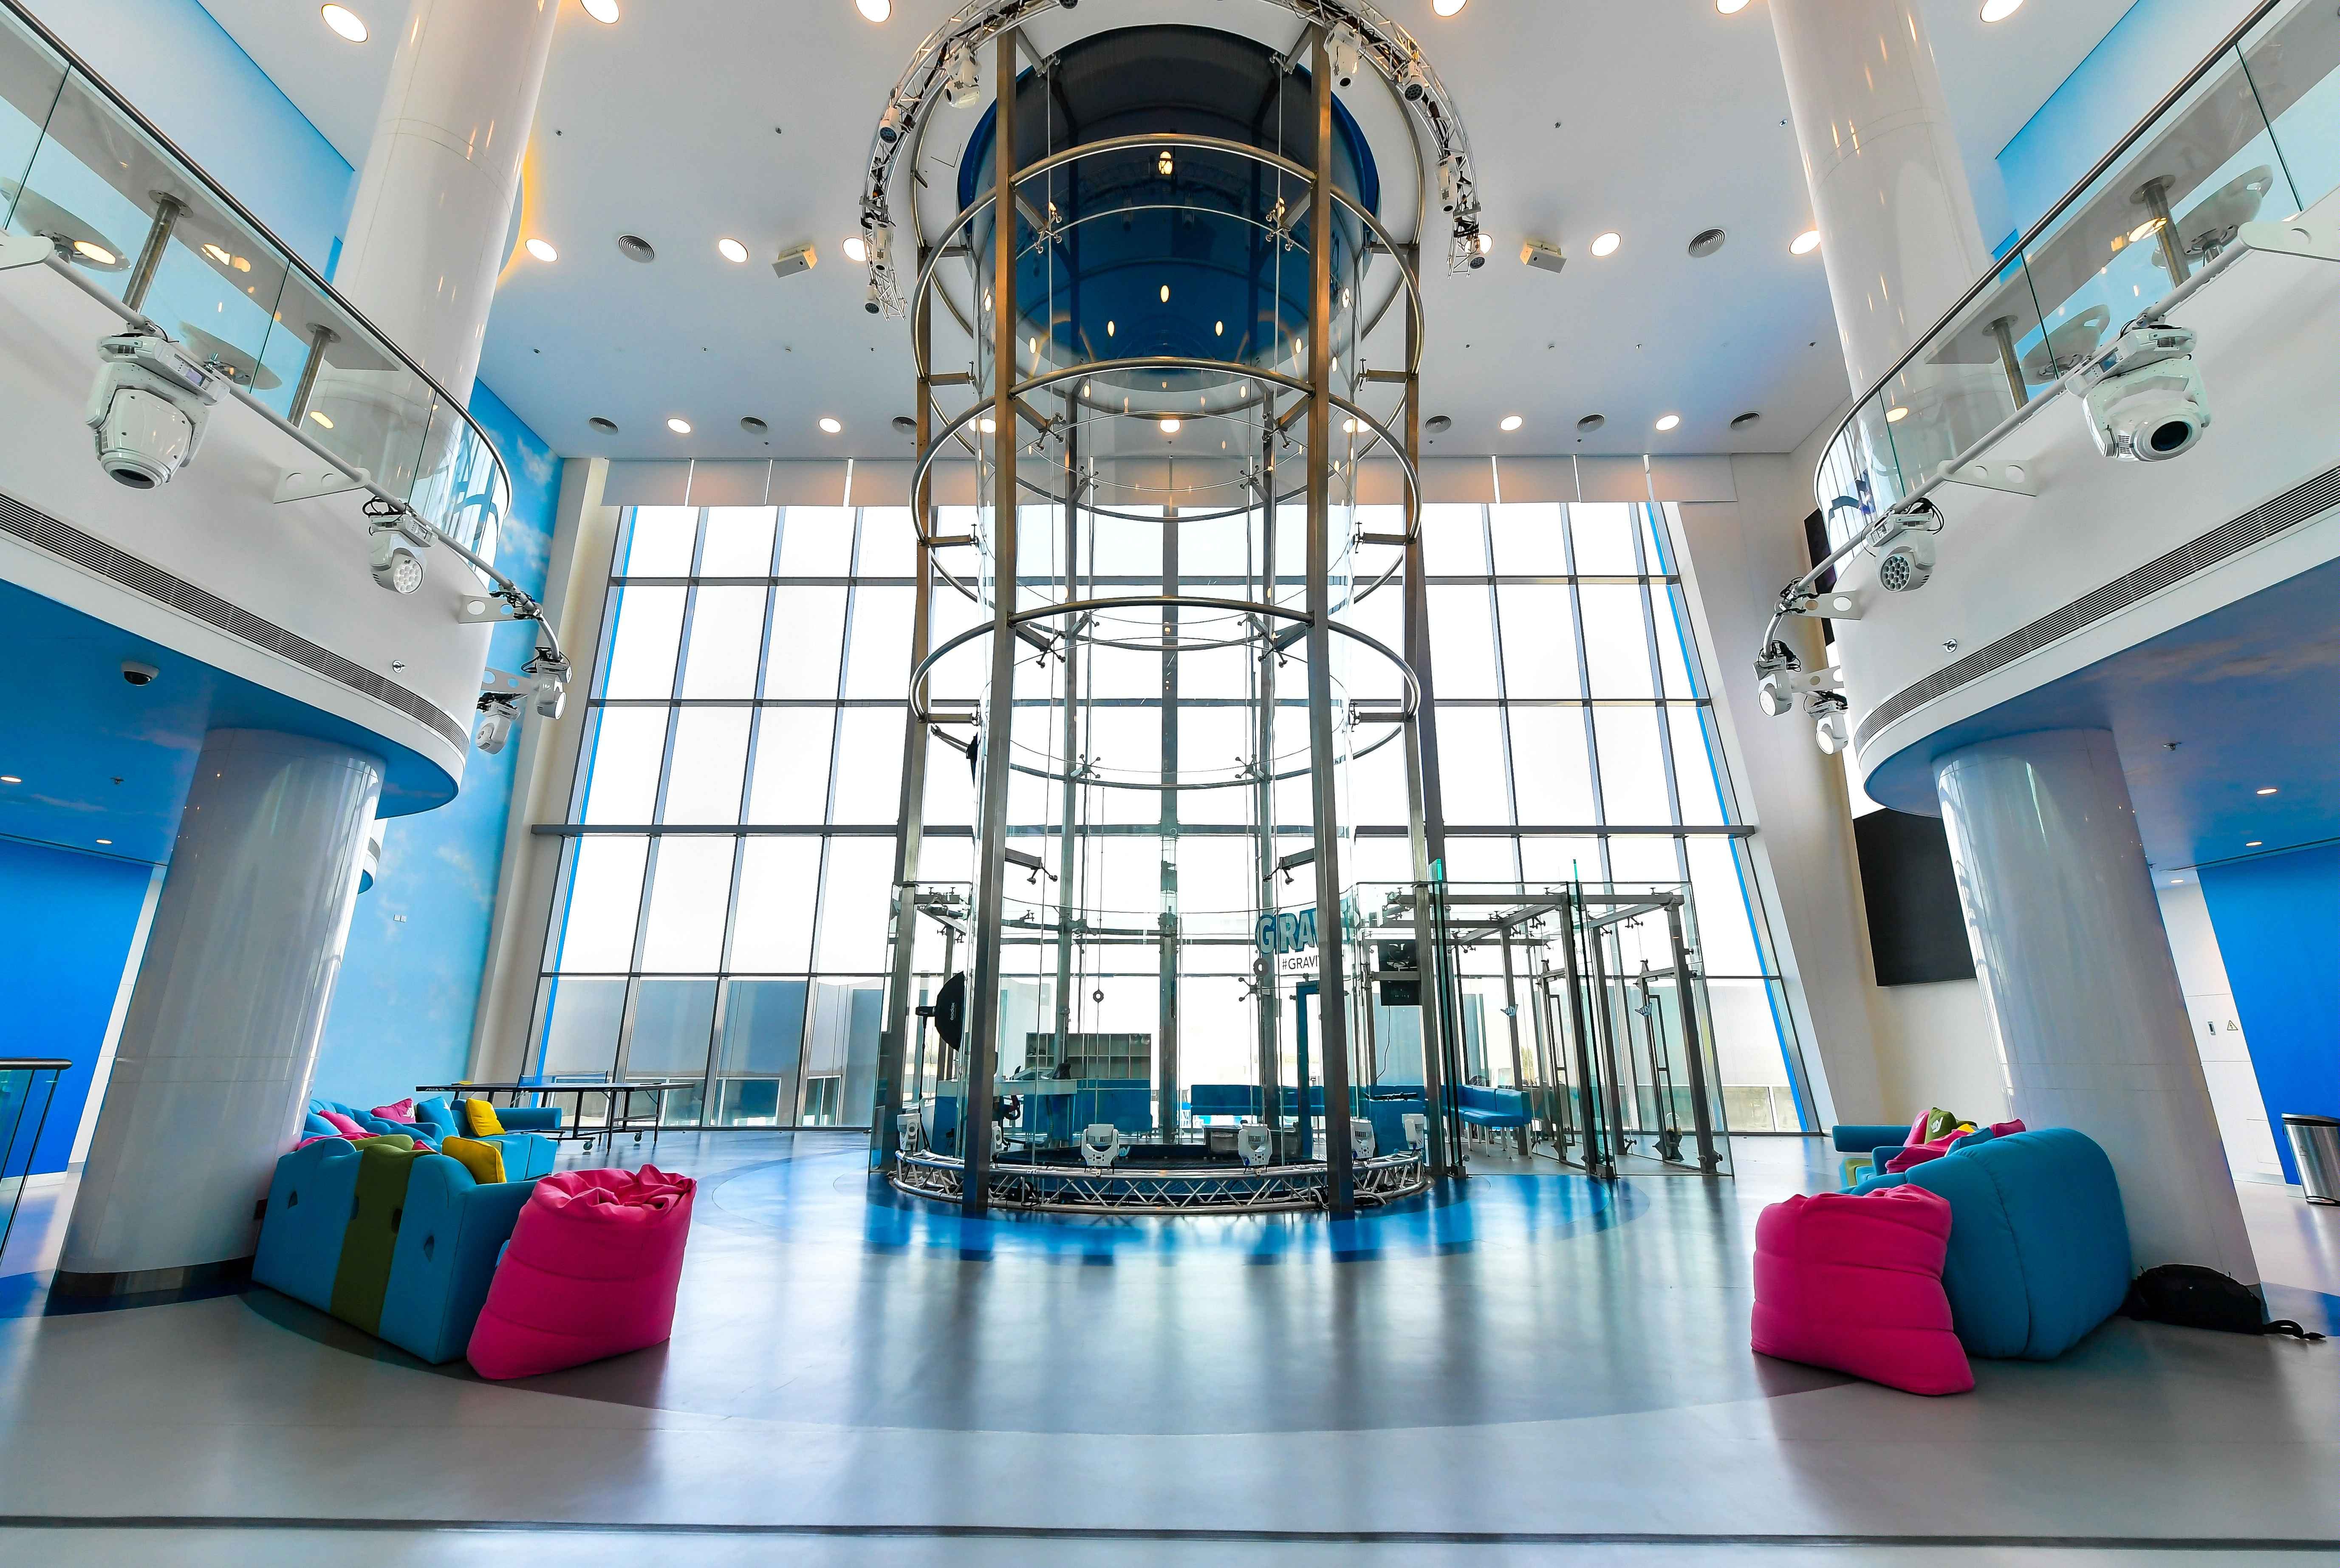 Wind tunnels are engineering marvels – vertical columns of air, creating 'indoor skydiving'! Image taken at Gravity Bahrain, one of the world's tallest glass tunnels